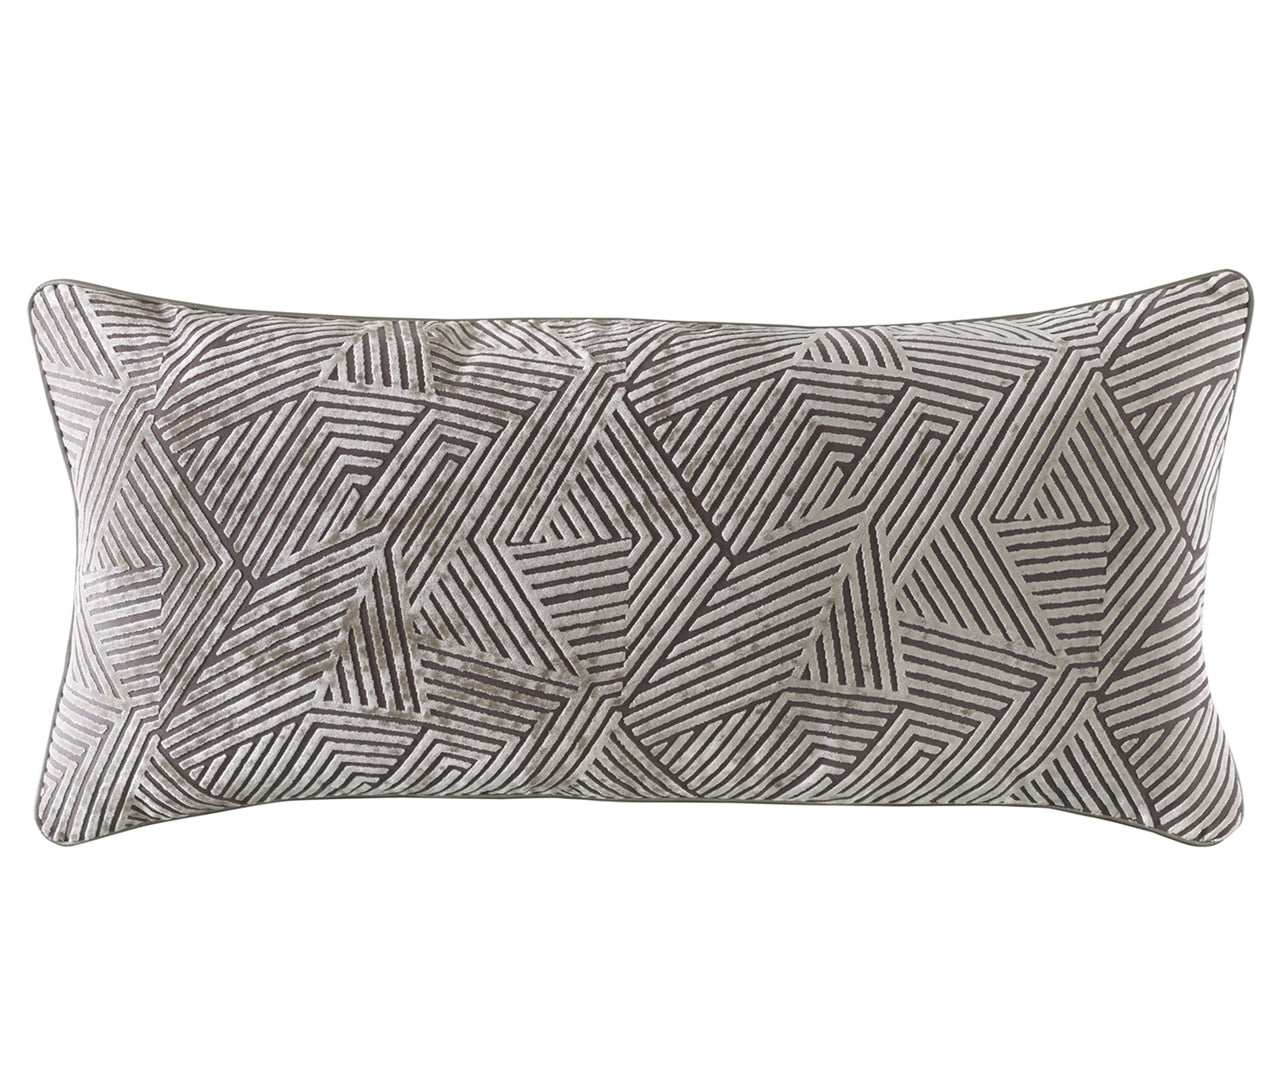 Candace Long Pillow Mystic Valley Traders - unique linens online